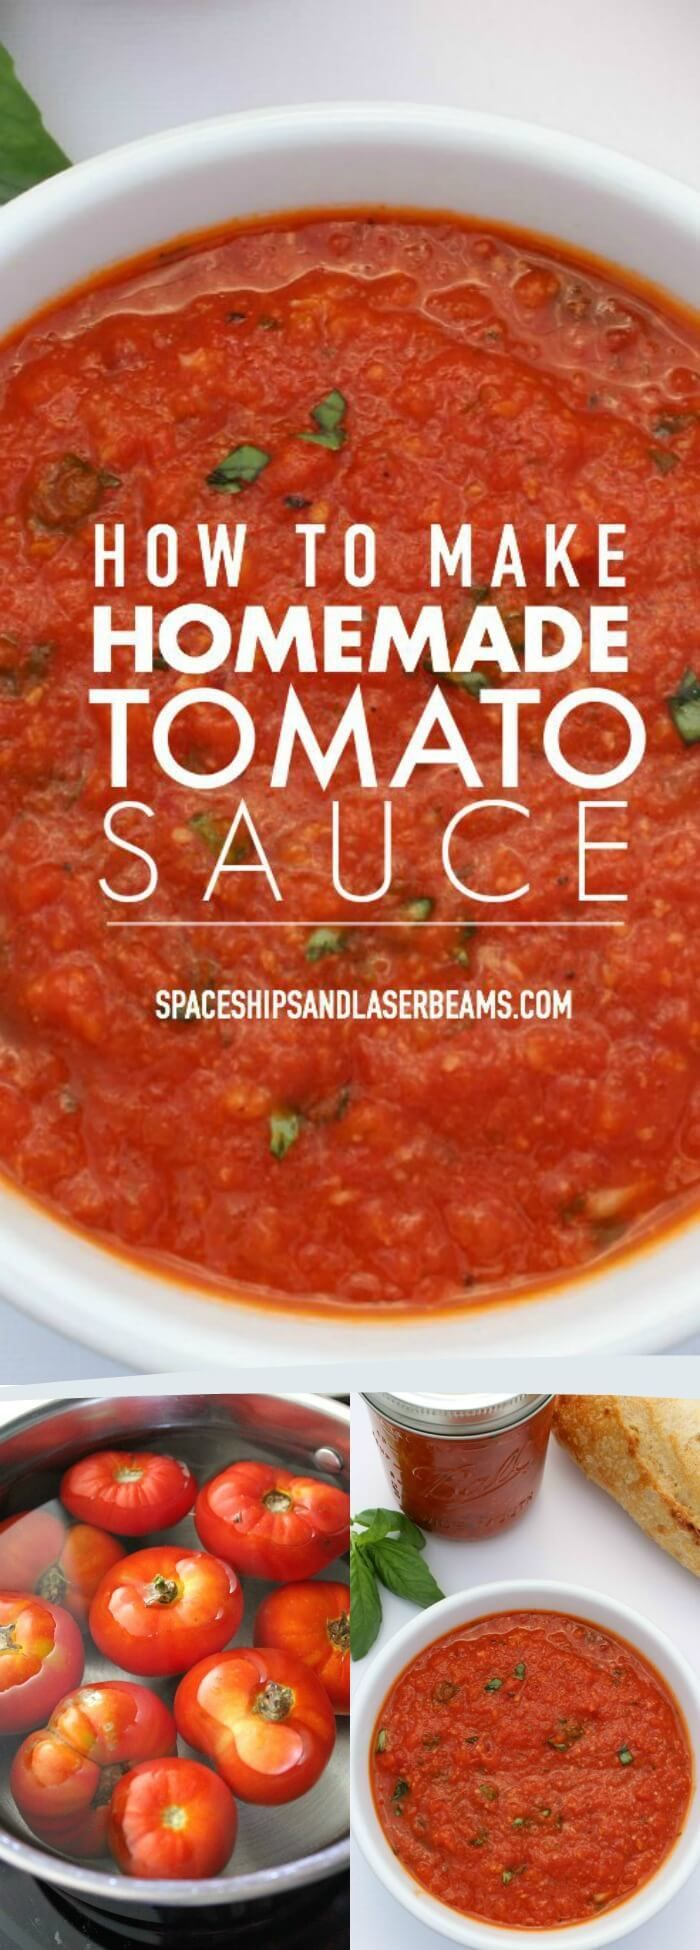 Italian Spaghetti Sauce And Canning Instructions Recipe Homemade Tomato Sauce Tomato Sauce